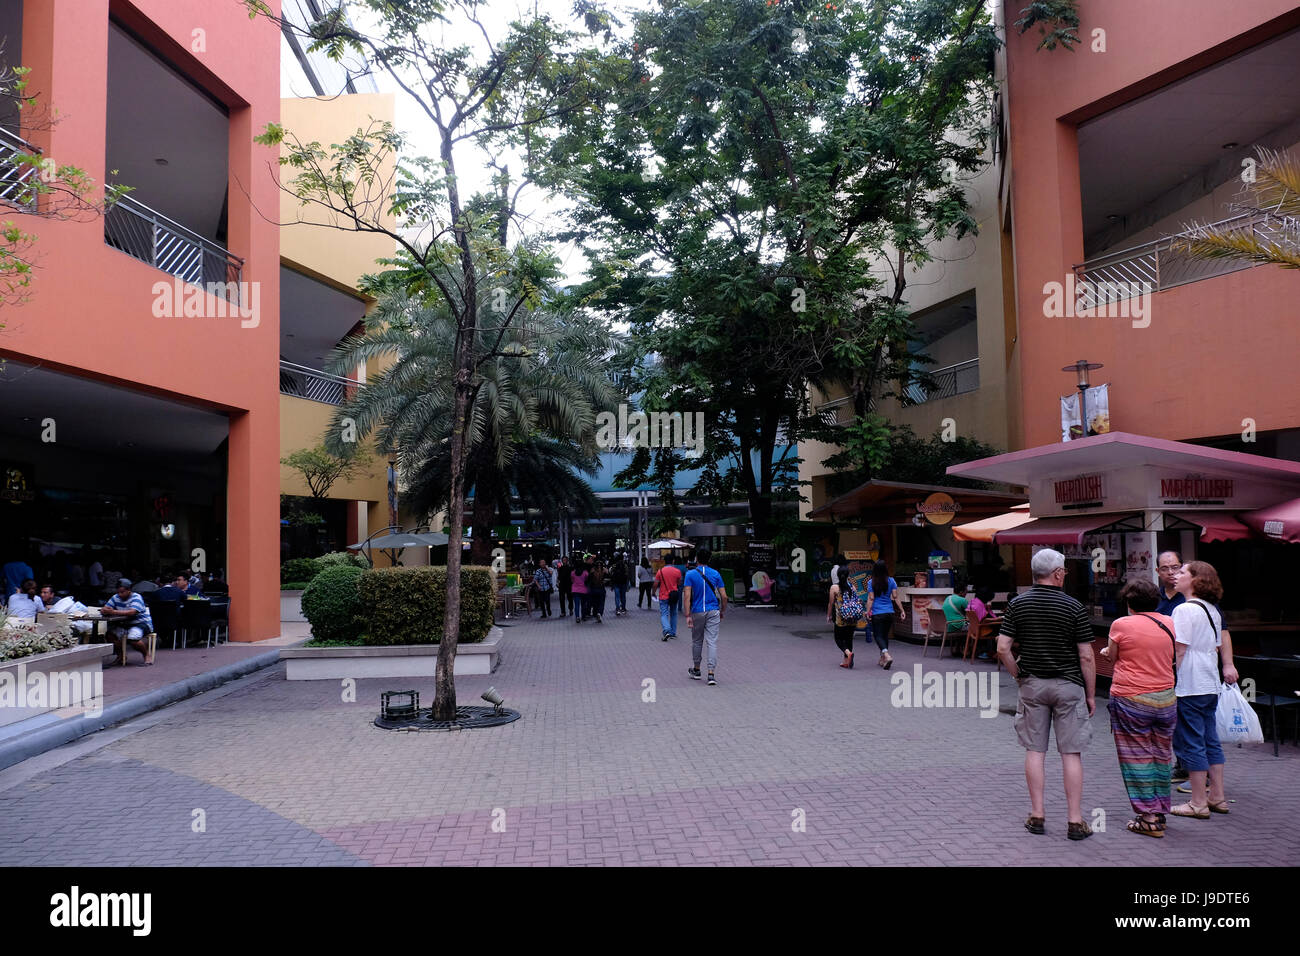 View of a passage at M Mall of Asia, also abbreviated as SM MOA, a shopping mall in Bay City, Pasay, Manila Philippines - Stock Image